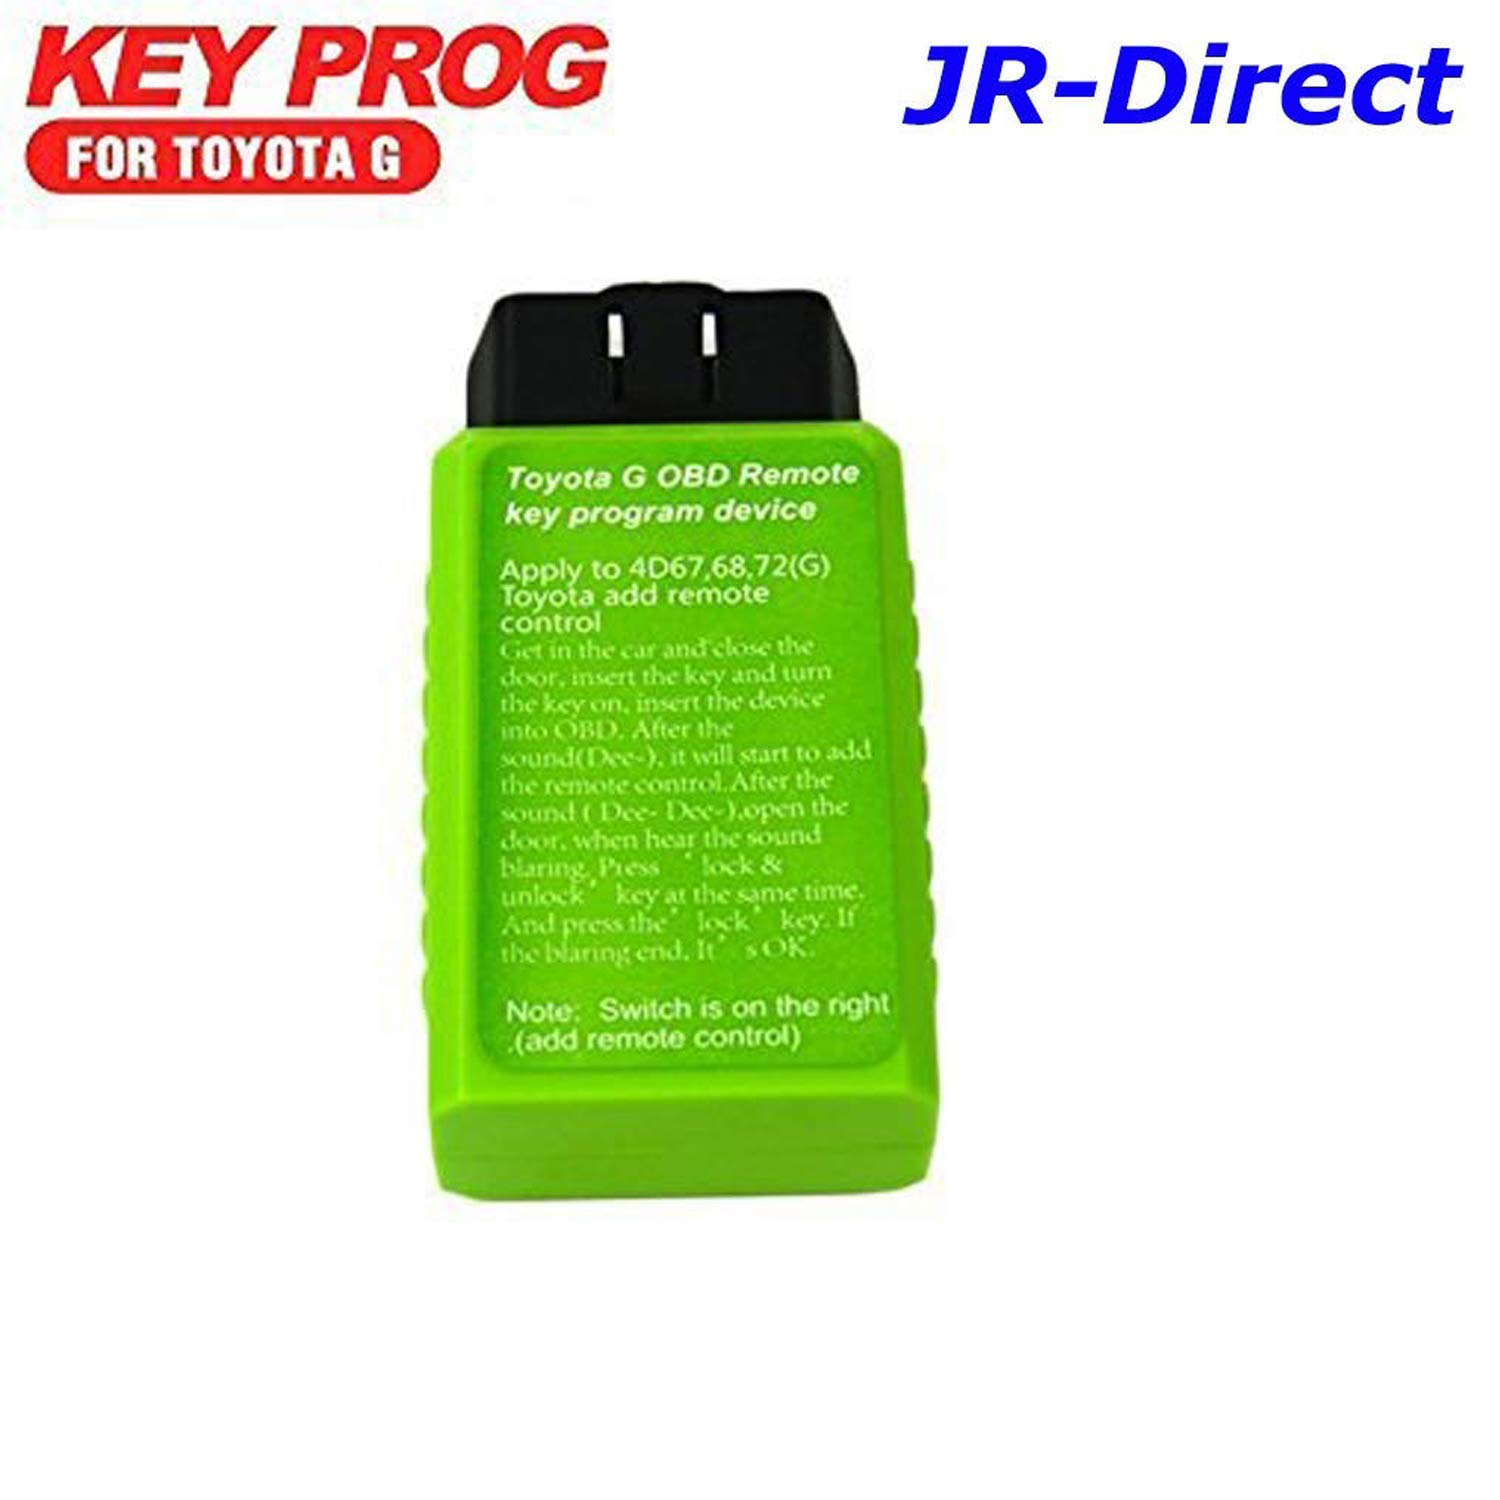 JR Tool for Toyota G and H Chip Key Programmer Vehicle OBD Remote Key  Programmer for Toyota G Device Smart Keymaker Toyota G and Toyota H Key